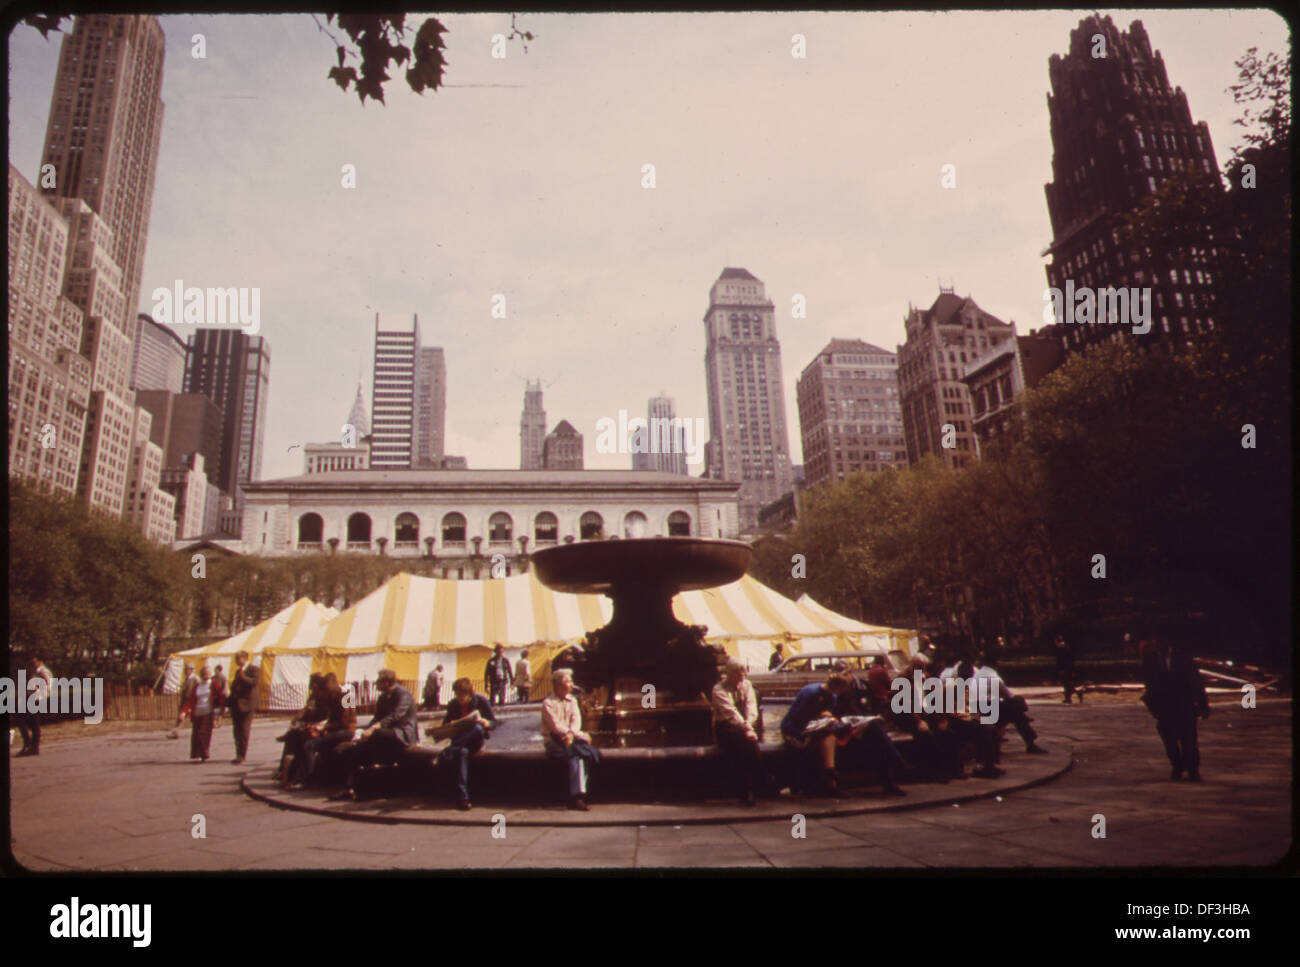 BRYANT PARK, BEHIND THE MAIN BRANCH OF THE NEW YORK PUBLIC LIBRARY IN MIDTOWN MANHATTAN. TEND HOUSES THE PARK'S... 551772 - Stock Image